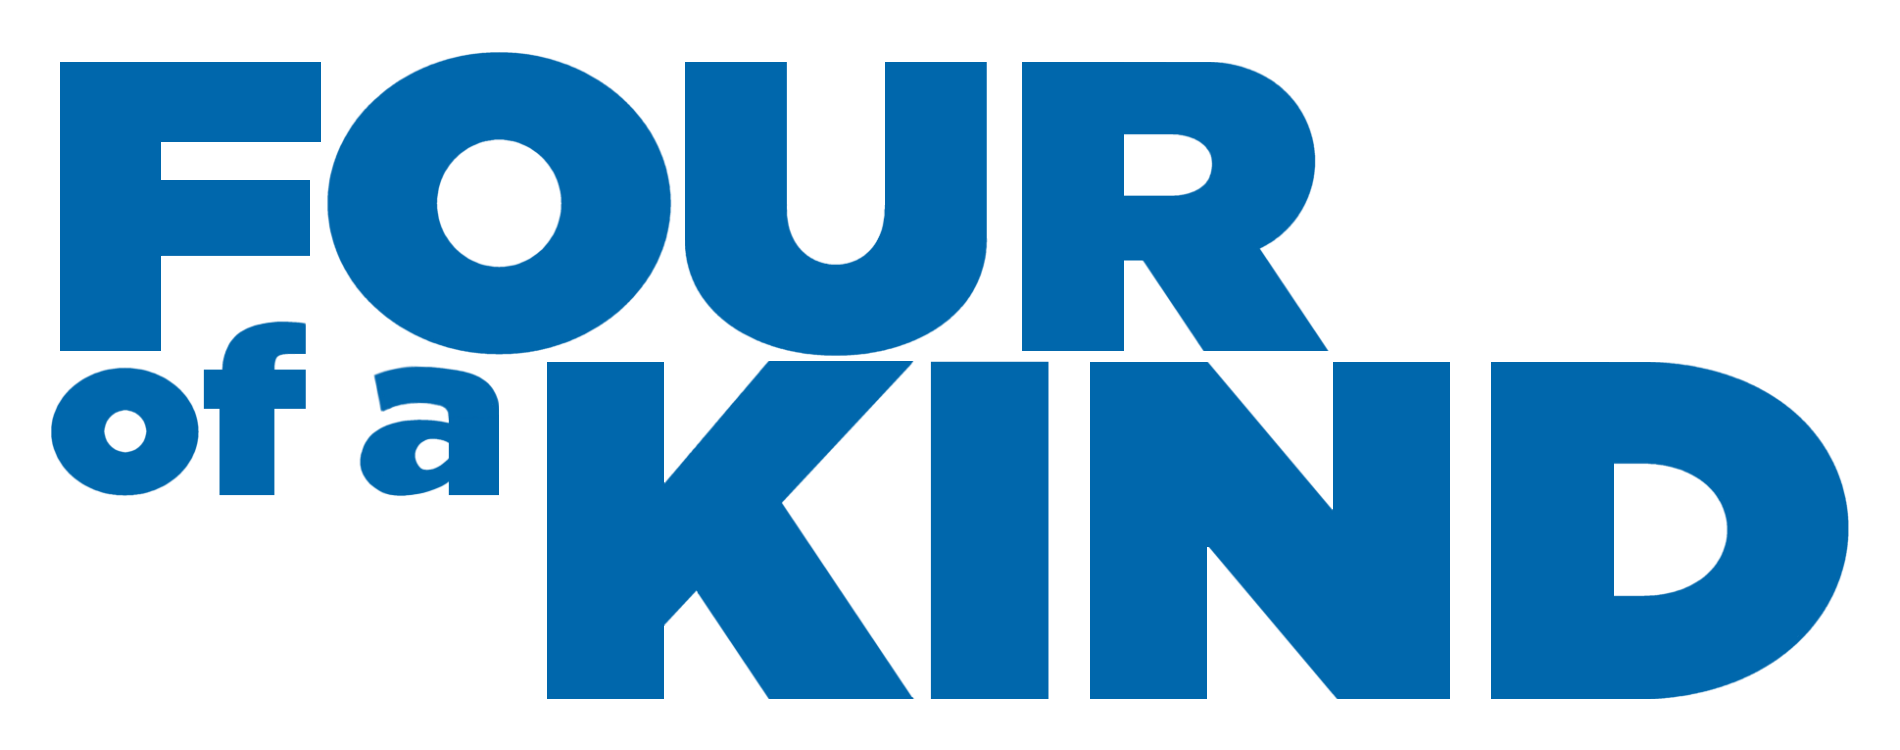 File:Four of a Kind logo.png.